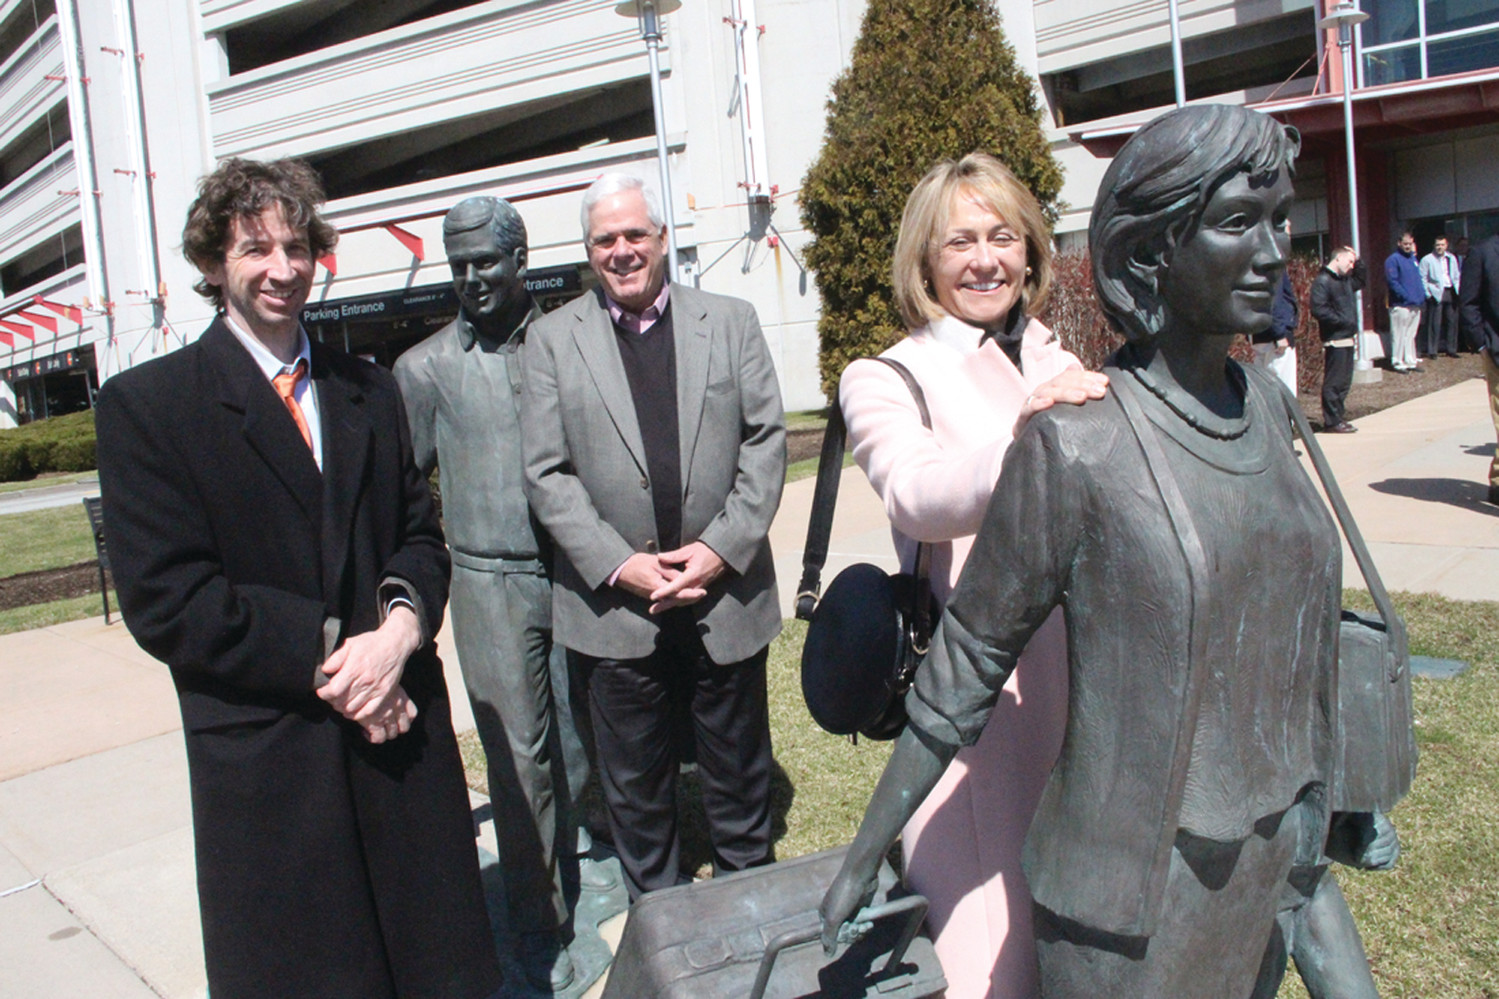 FAMILIAR FACES: Sculptor Chris Kane (left) was commissioned in 2000 by Jim Skeffington to do a sculpture outside the Red Beam Garage. Skeffington got Karl Sherry and his wife Kathy to model for the work that took Kane two years to complete. No, the Sherrys didn't spend two years posing, but the Sherrys were at the airport Thursday for the reopening of the garage and to stand alongside their immortal lookalikes for a quick photo.